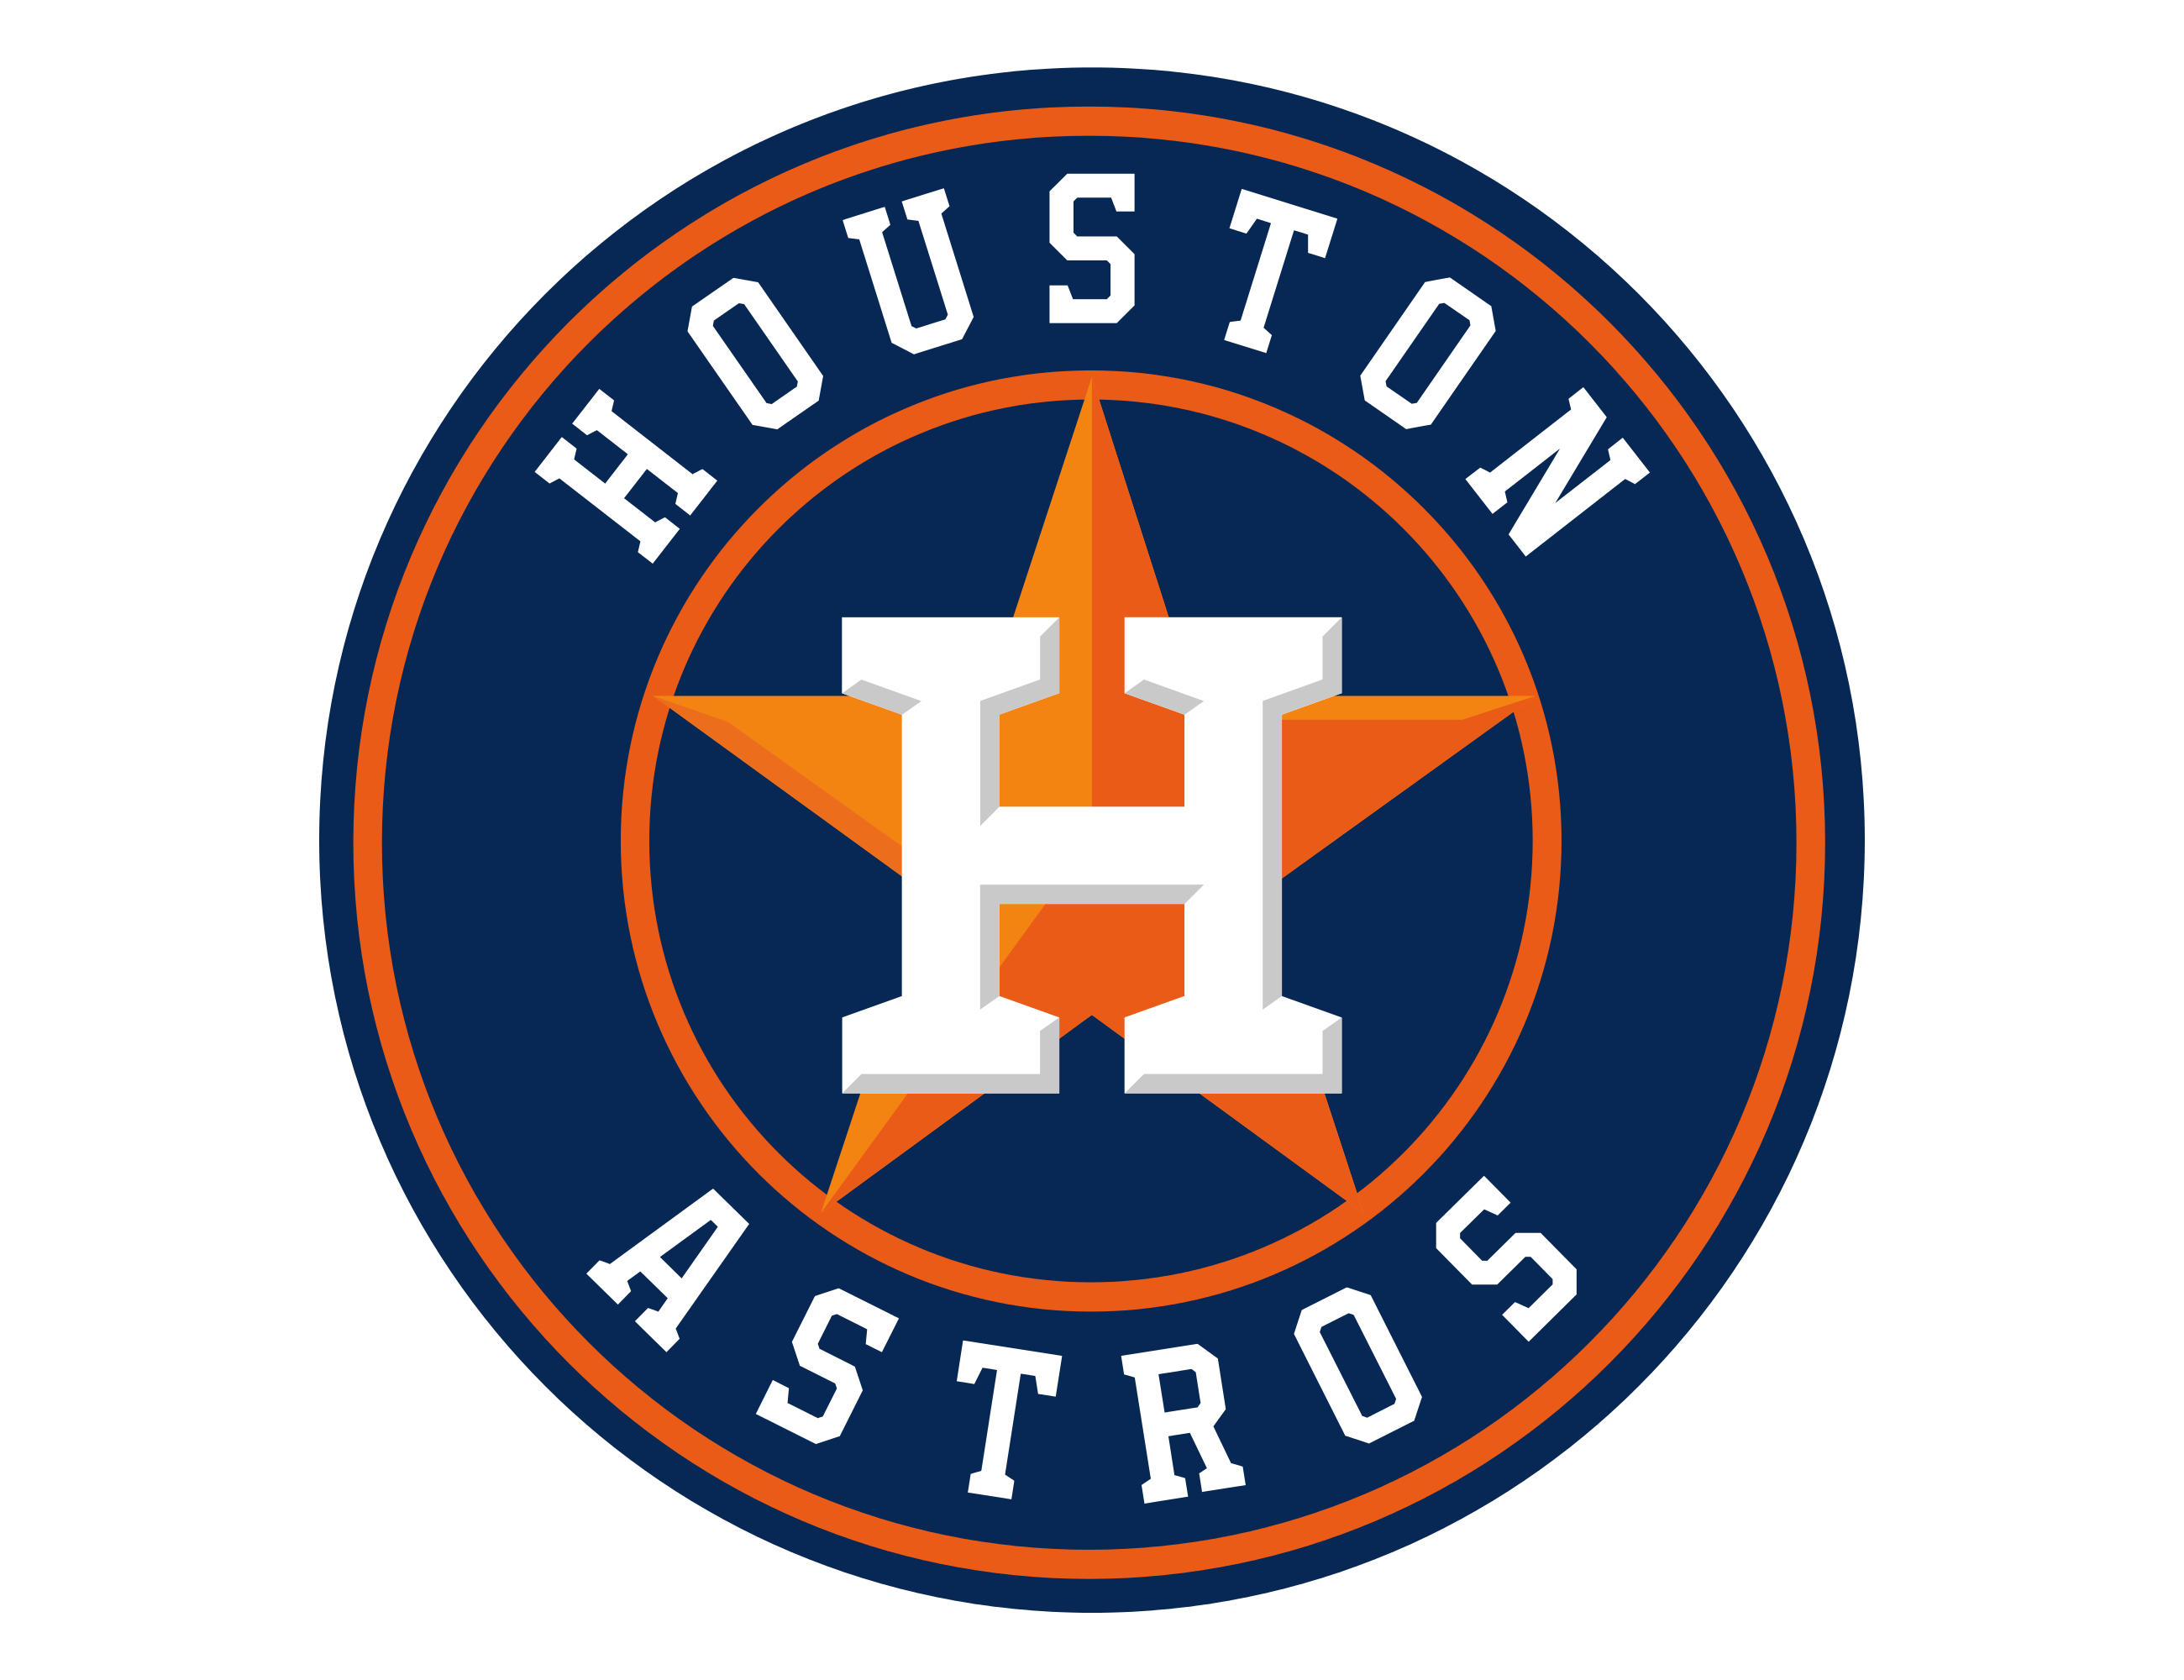 Houston astros logo astros symbol meaning history and evolution astros logo biocorpaavc Images